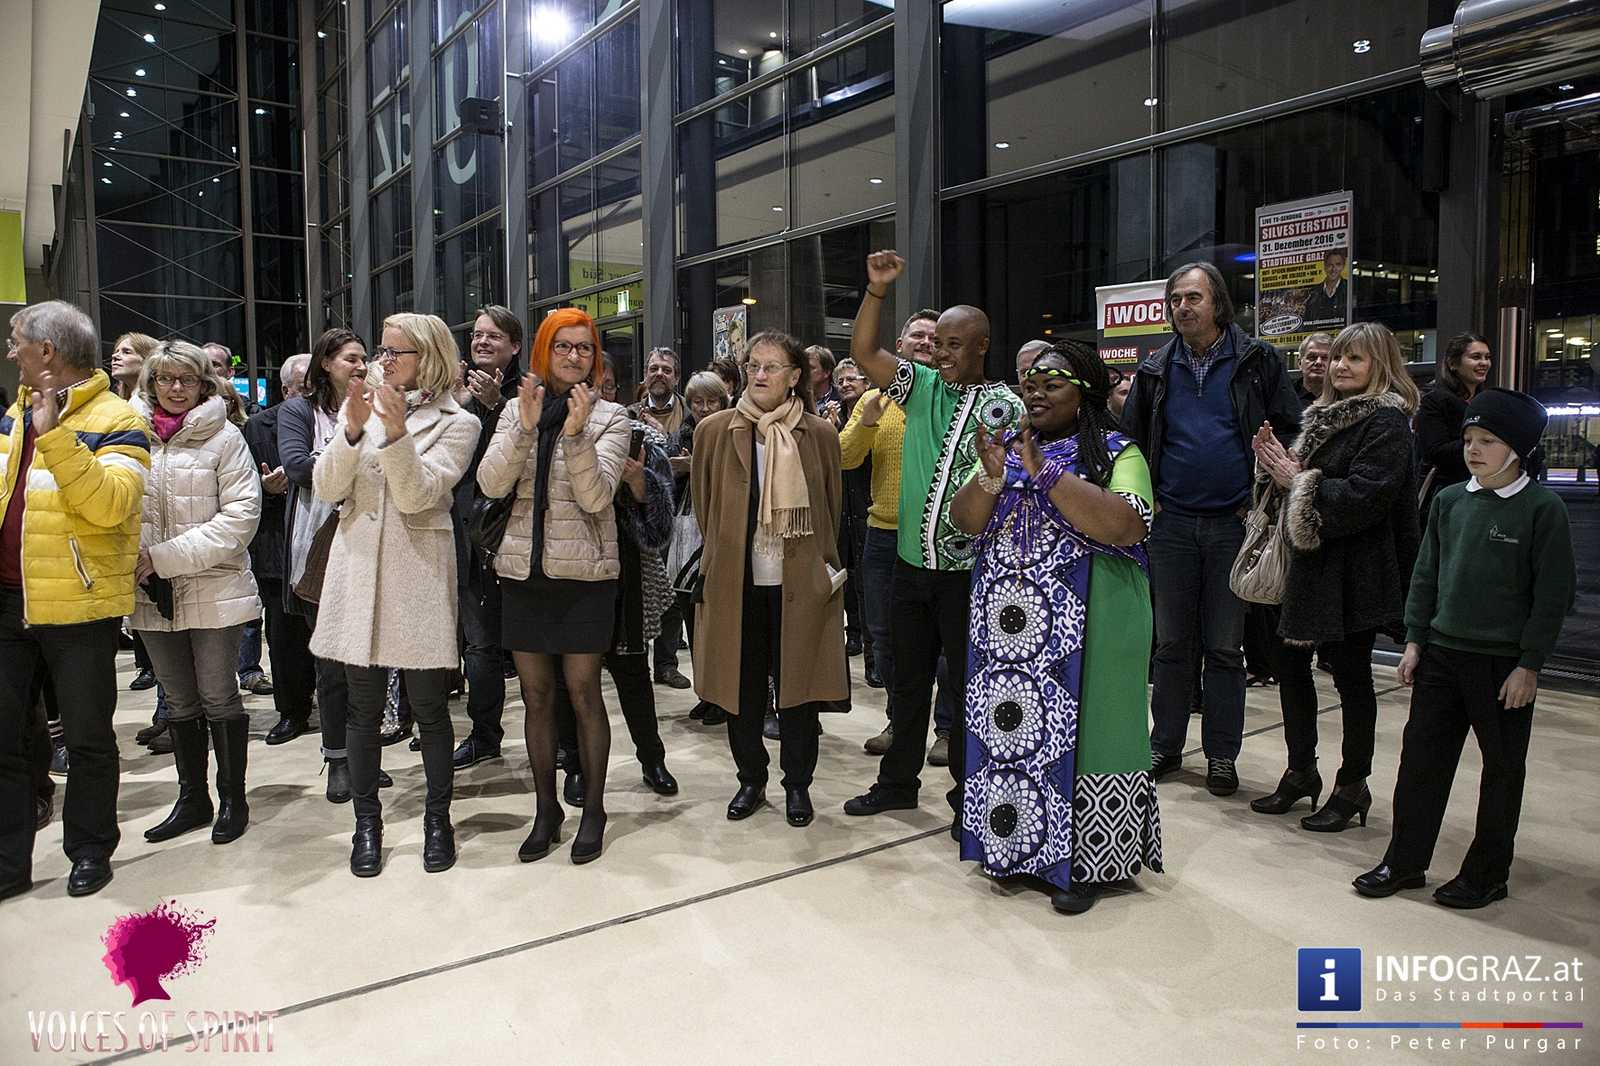 soweto gospel choir internationales chorfestival statdthalle graz voices of spirit eroeffnung festivals 2016 150